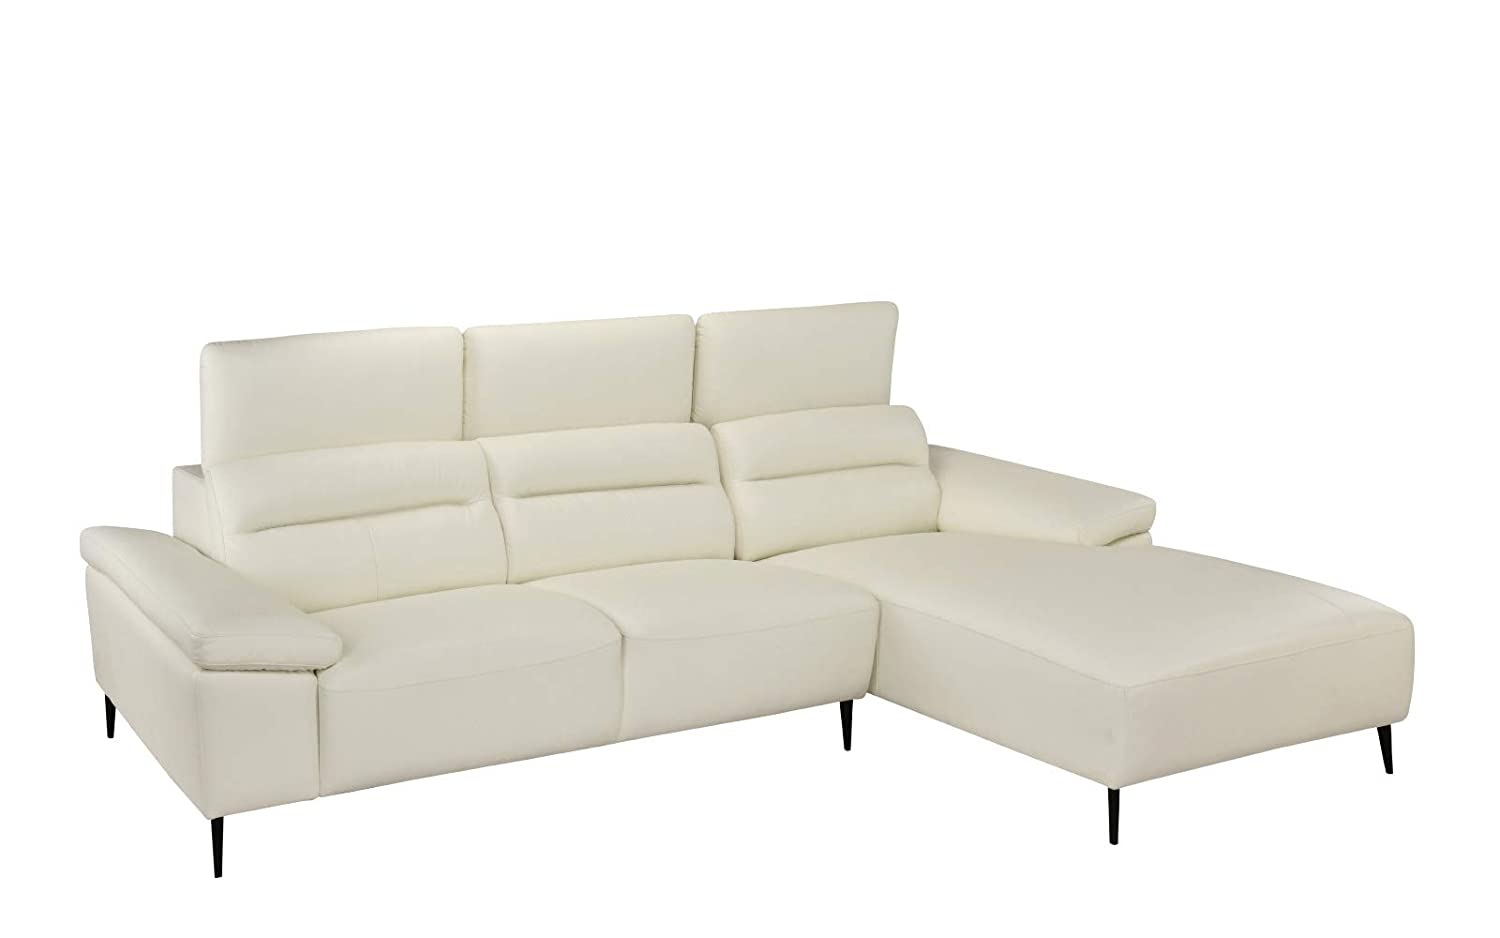 Leather Match Sectional Sofa, L-Shape Couch with Chaise Lounge (Right Chaise, White)